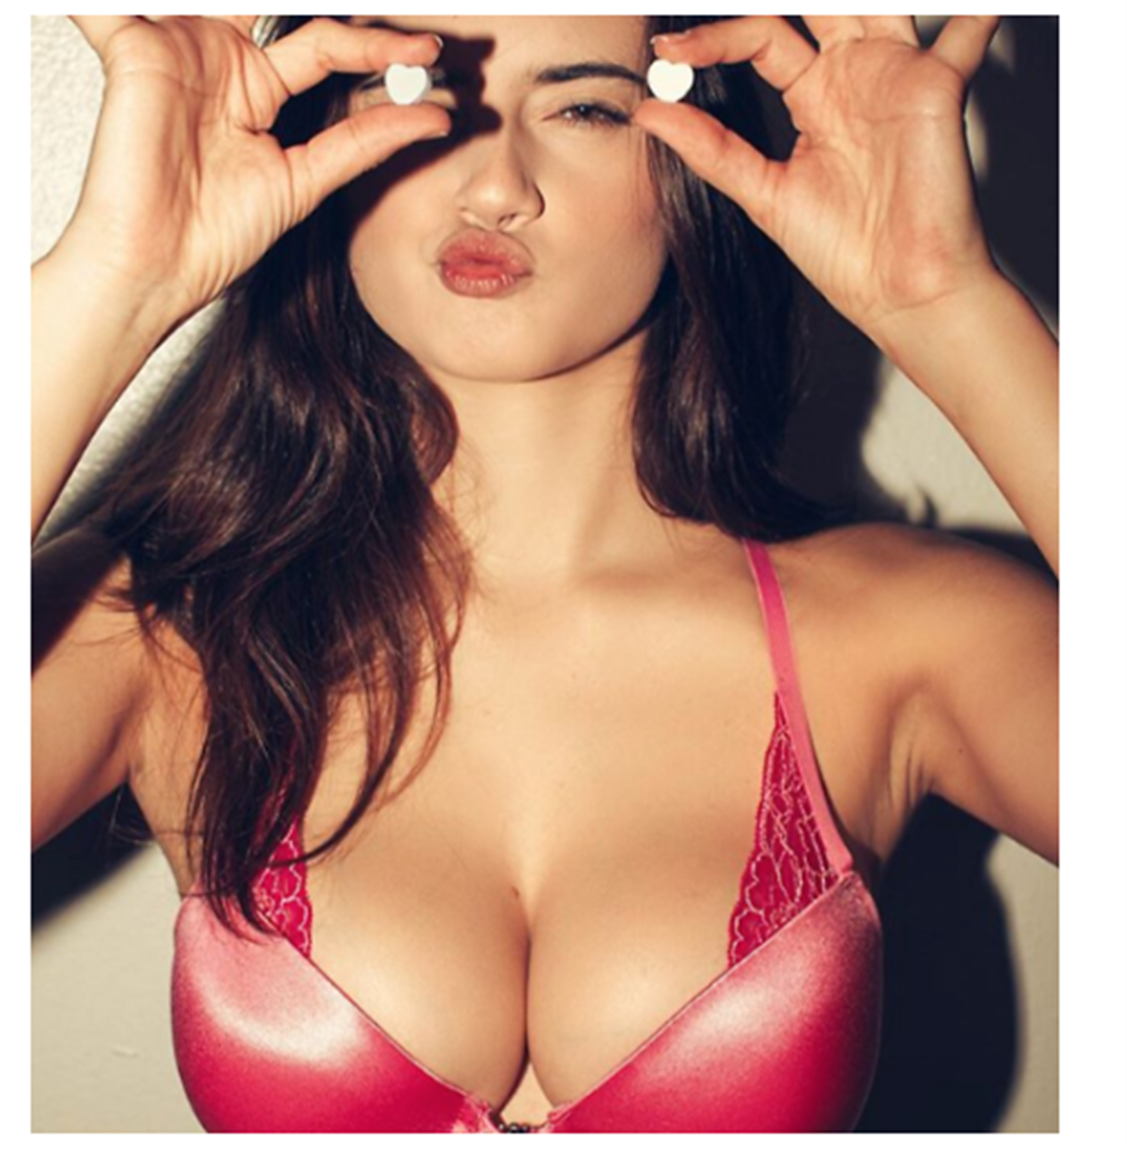 Frederick's of Hollywood – $15 Bras (Mult. Styles) + Free Shipping!